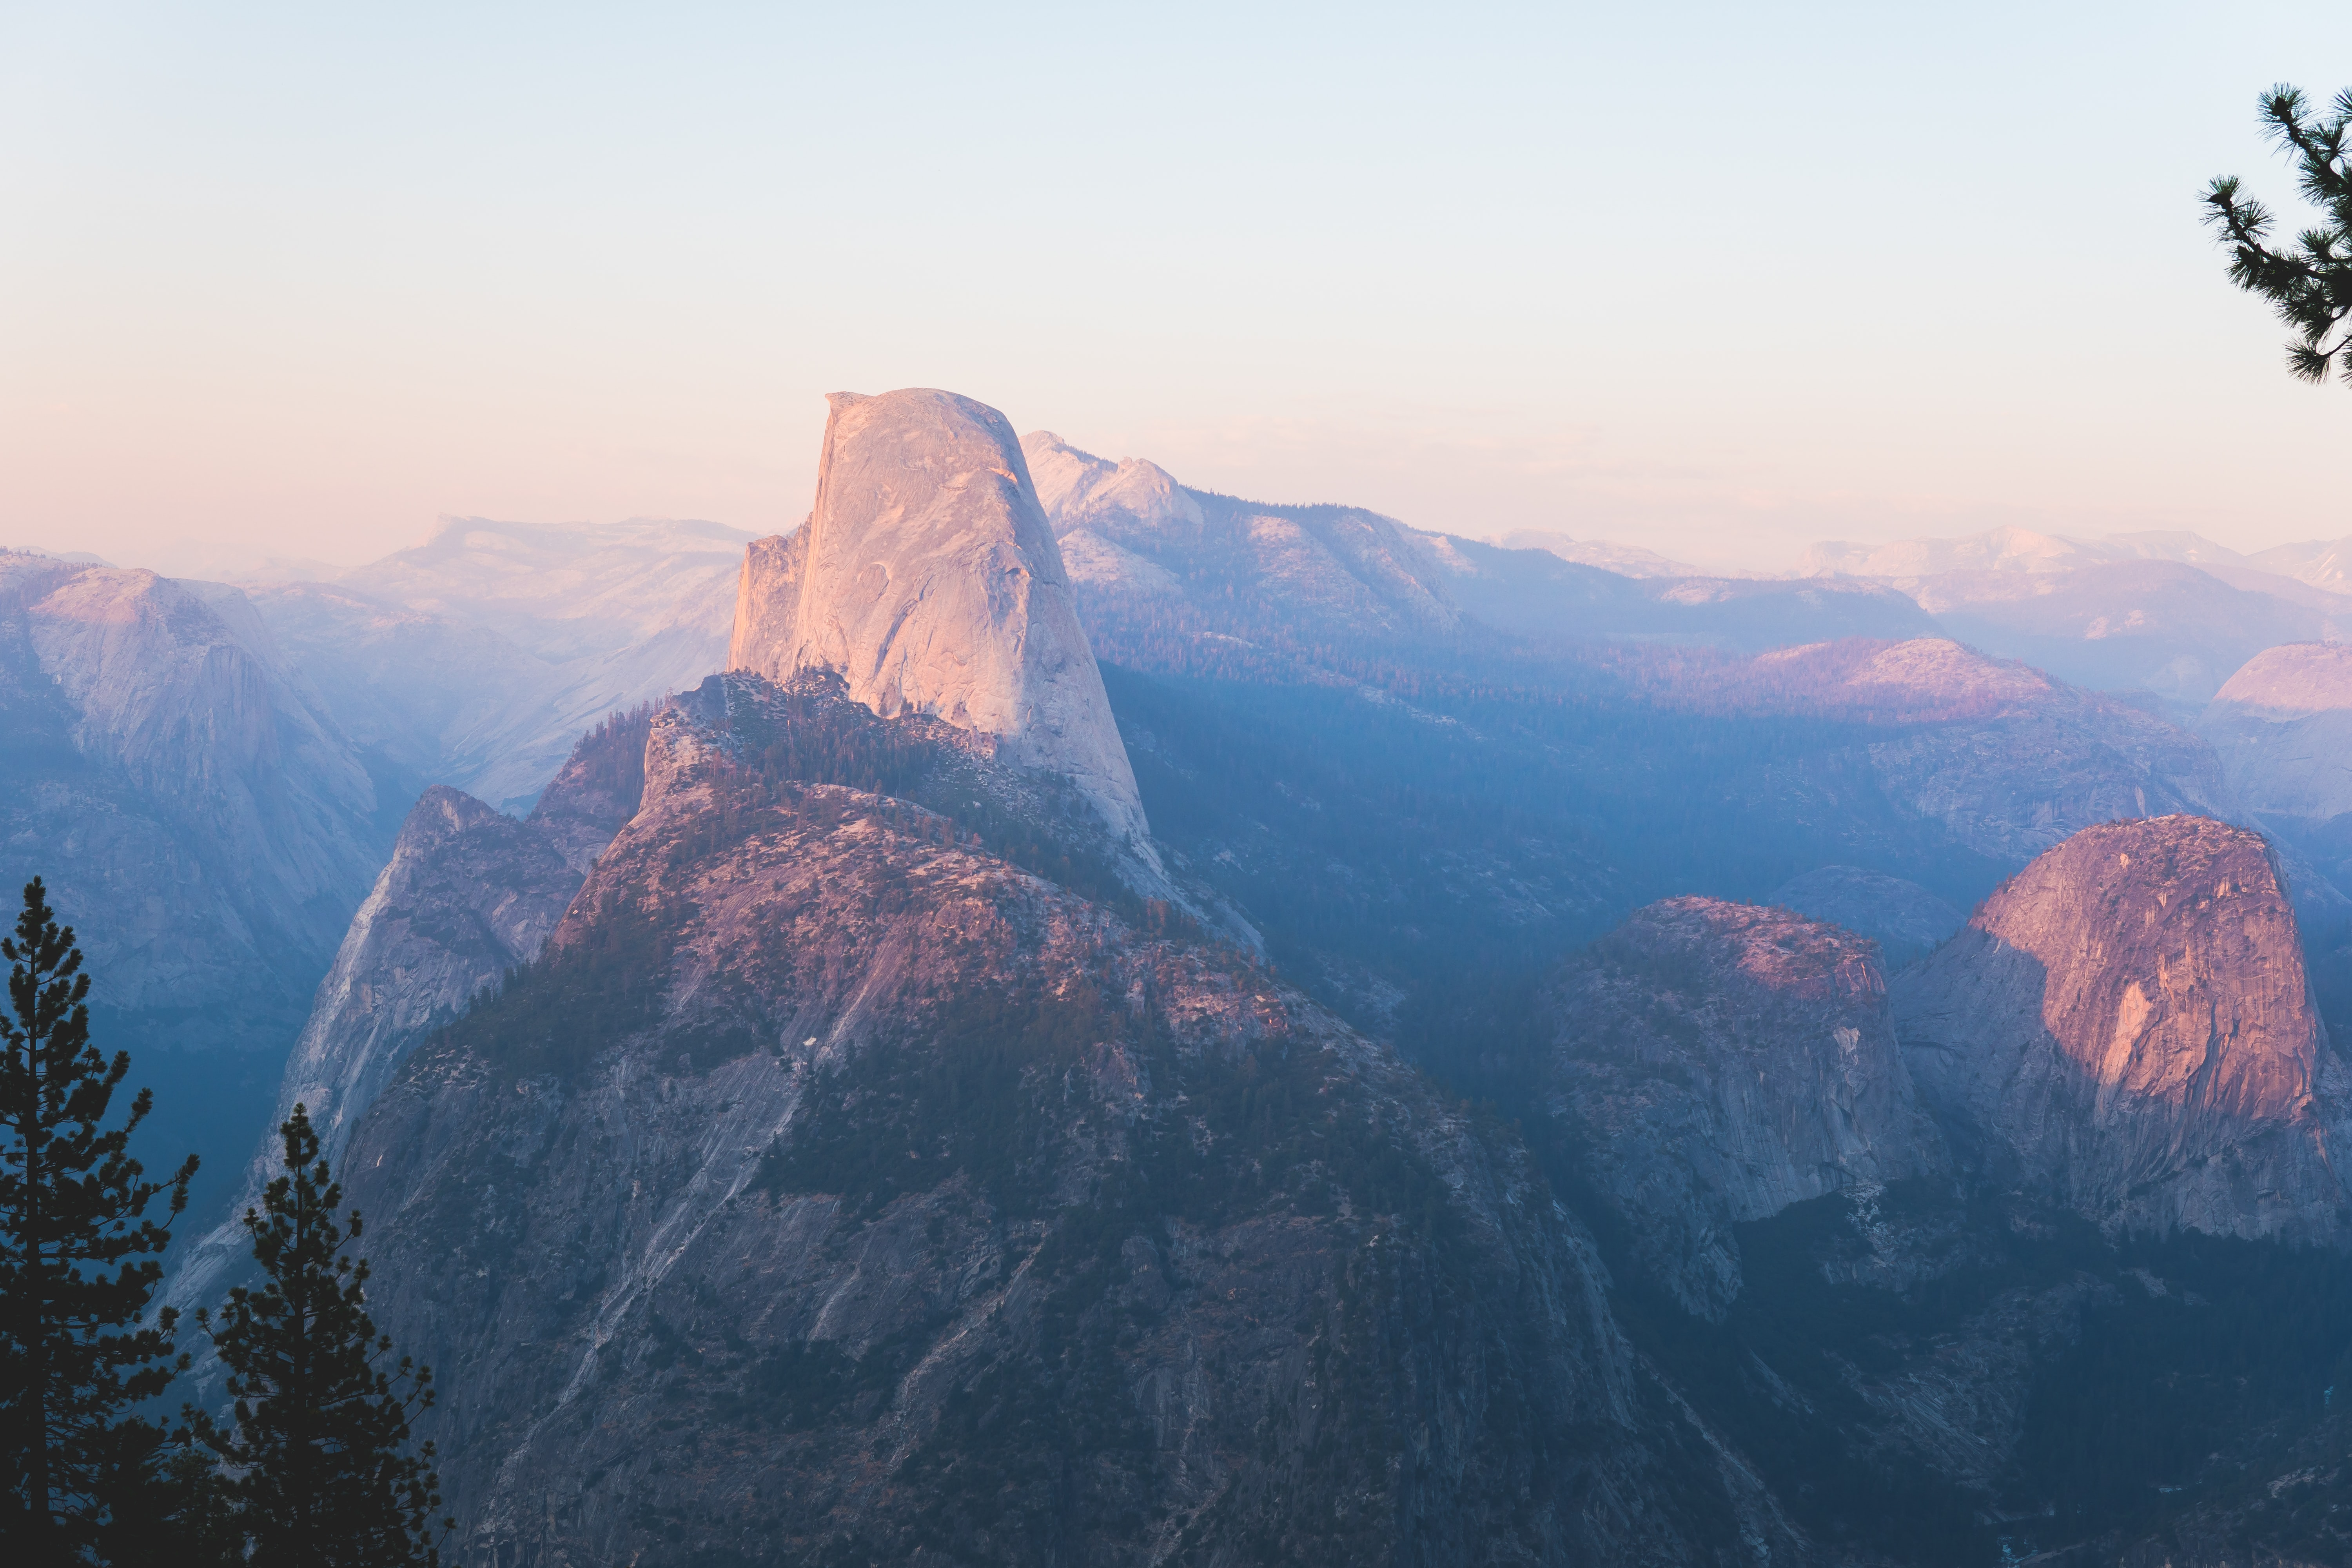 A high view of the granite cliffs in Yosemite Valley